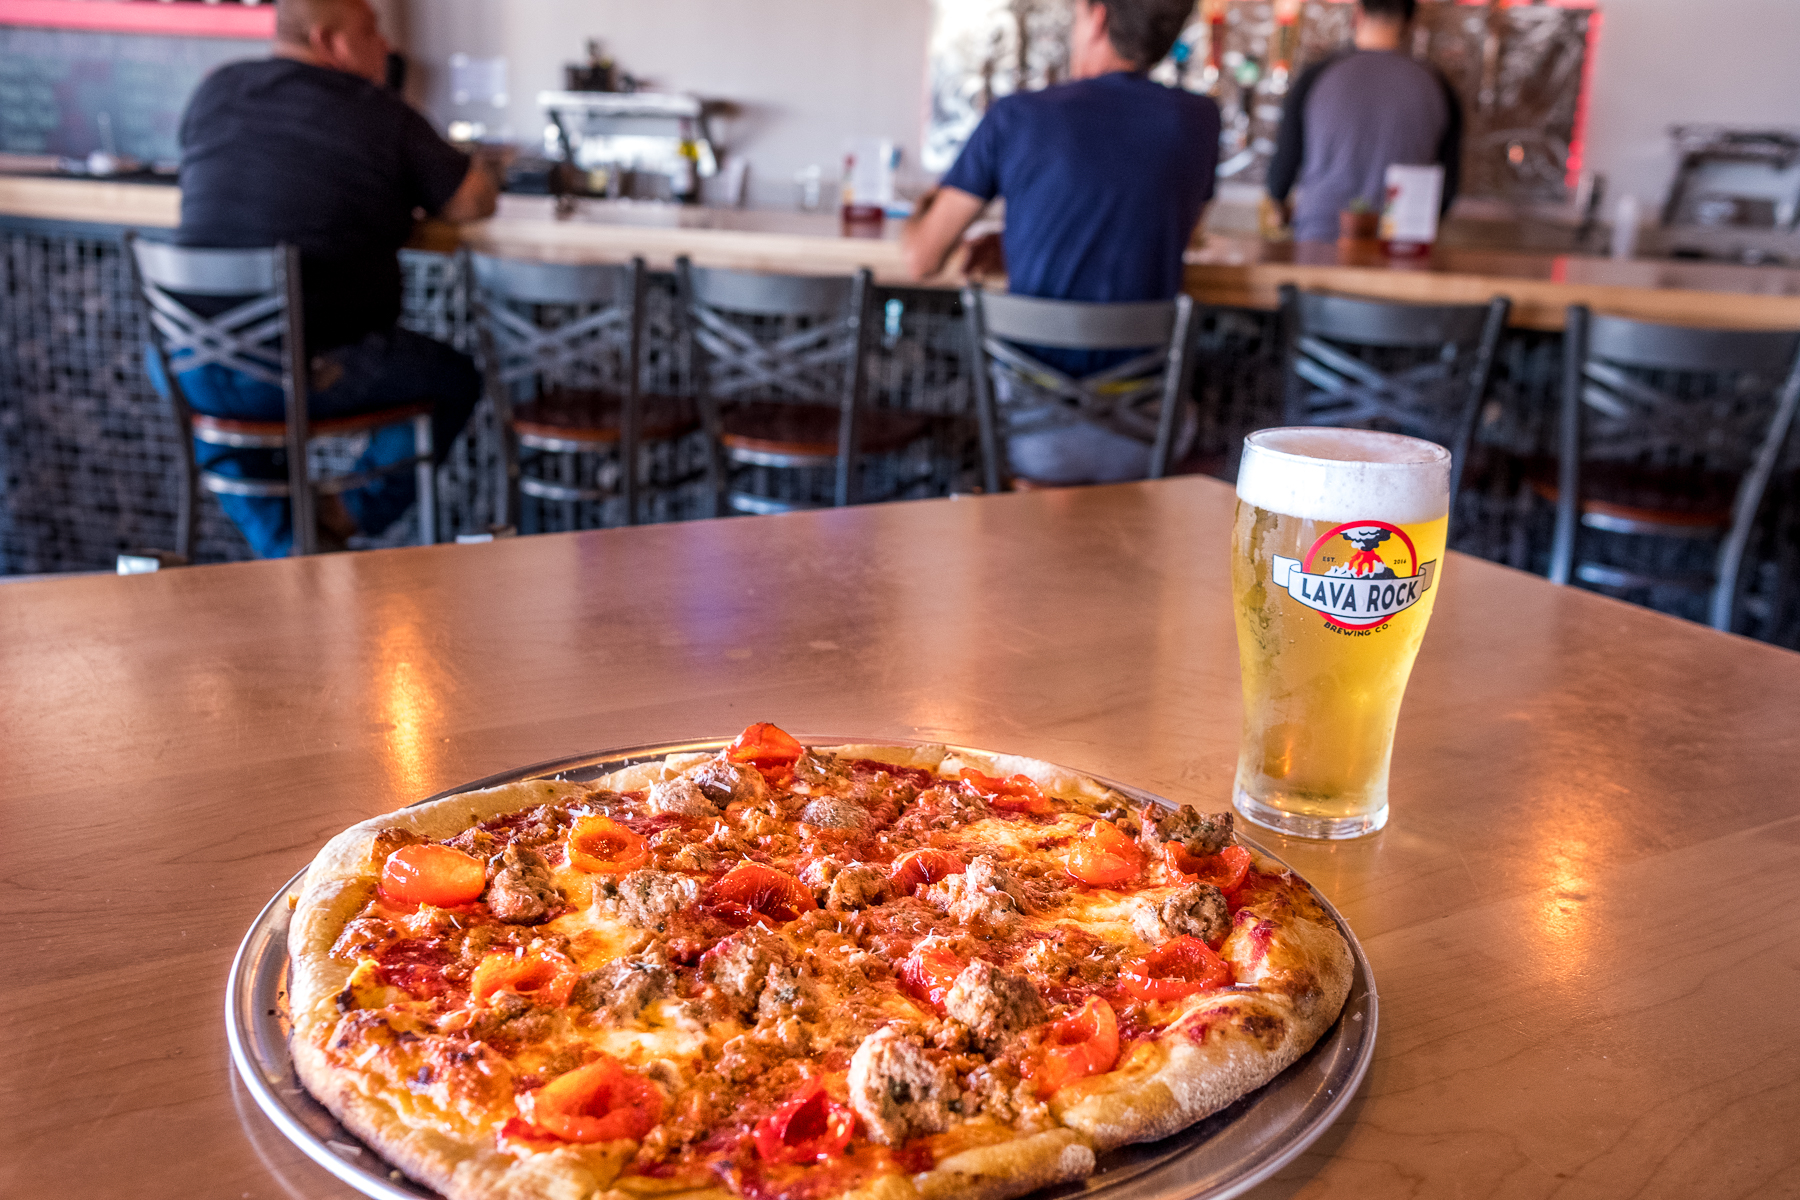 M'tucci's Sausage Pizza and Lava Rock Valles Lager